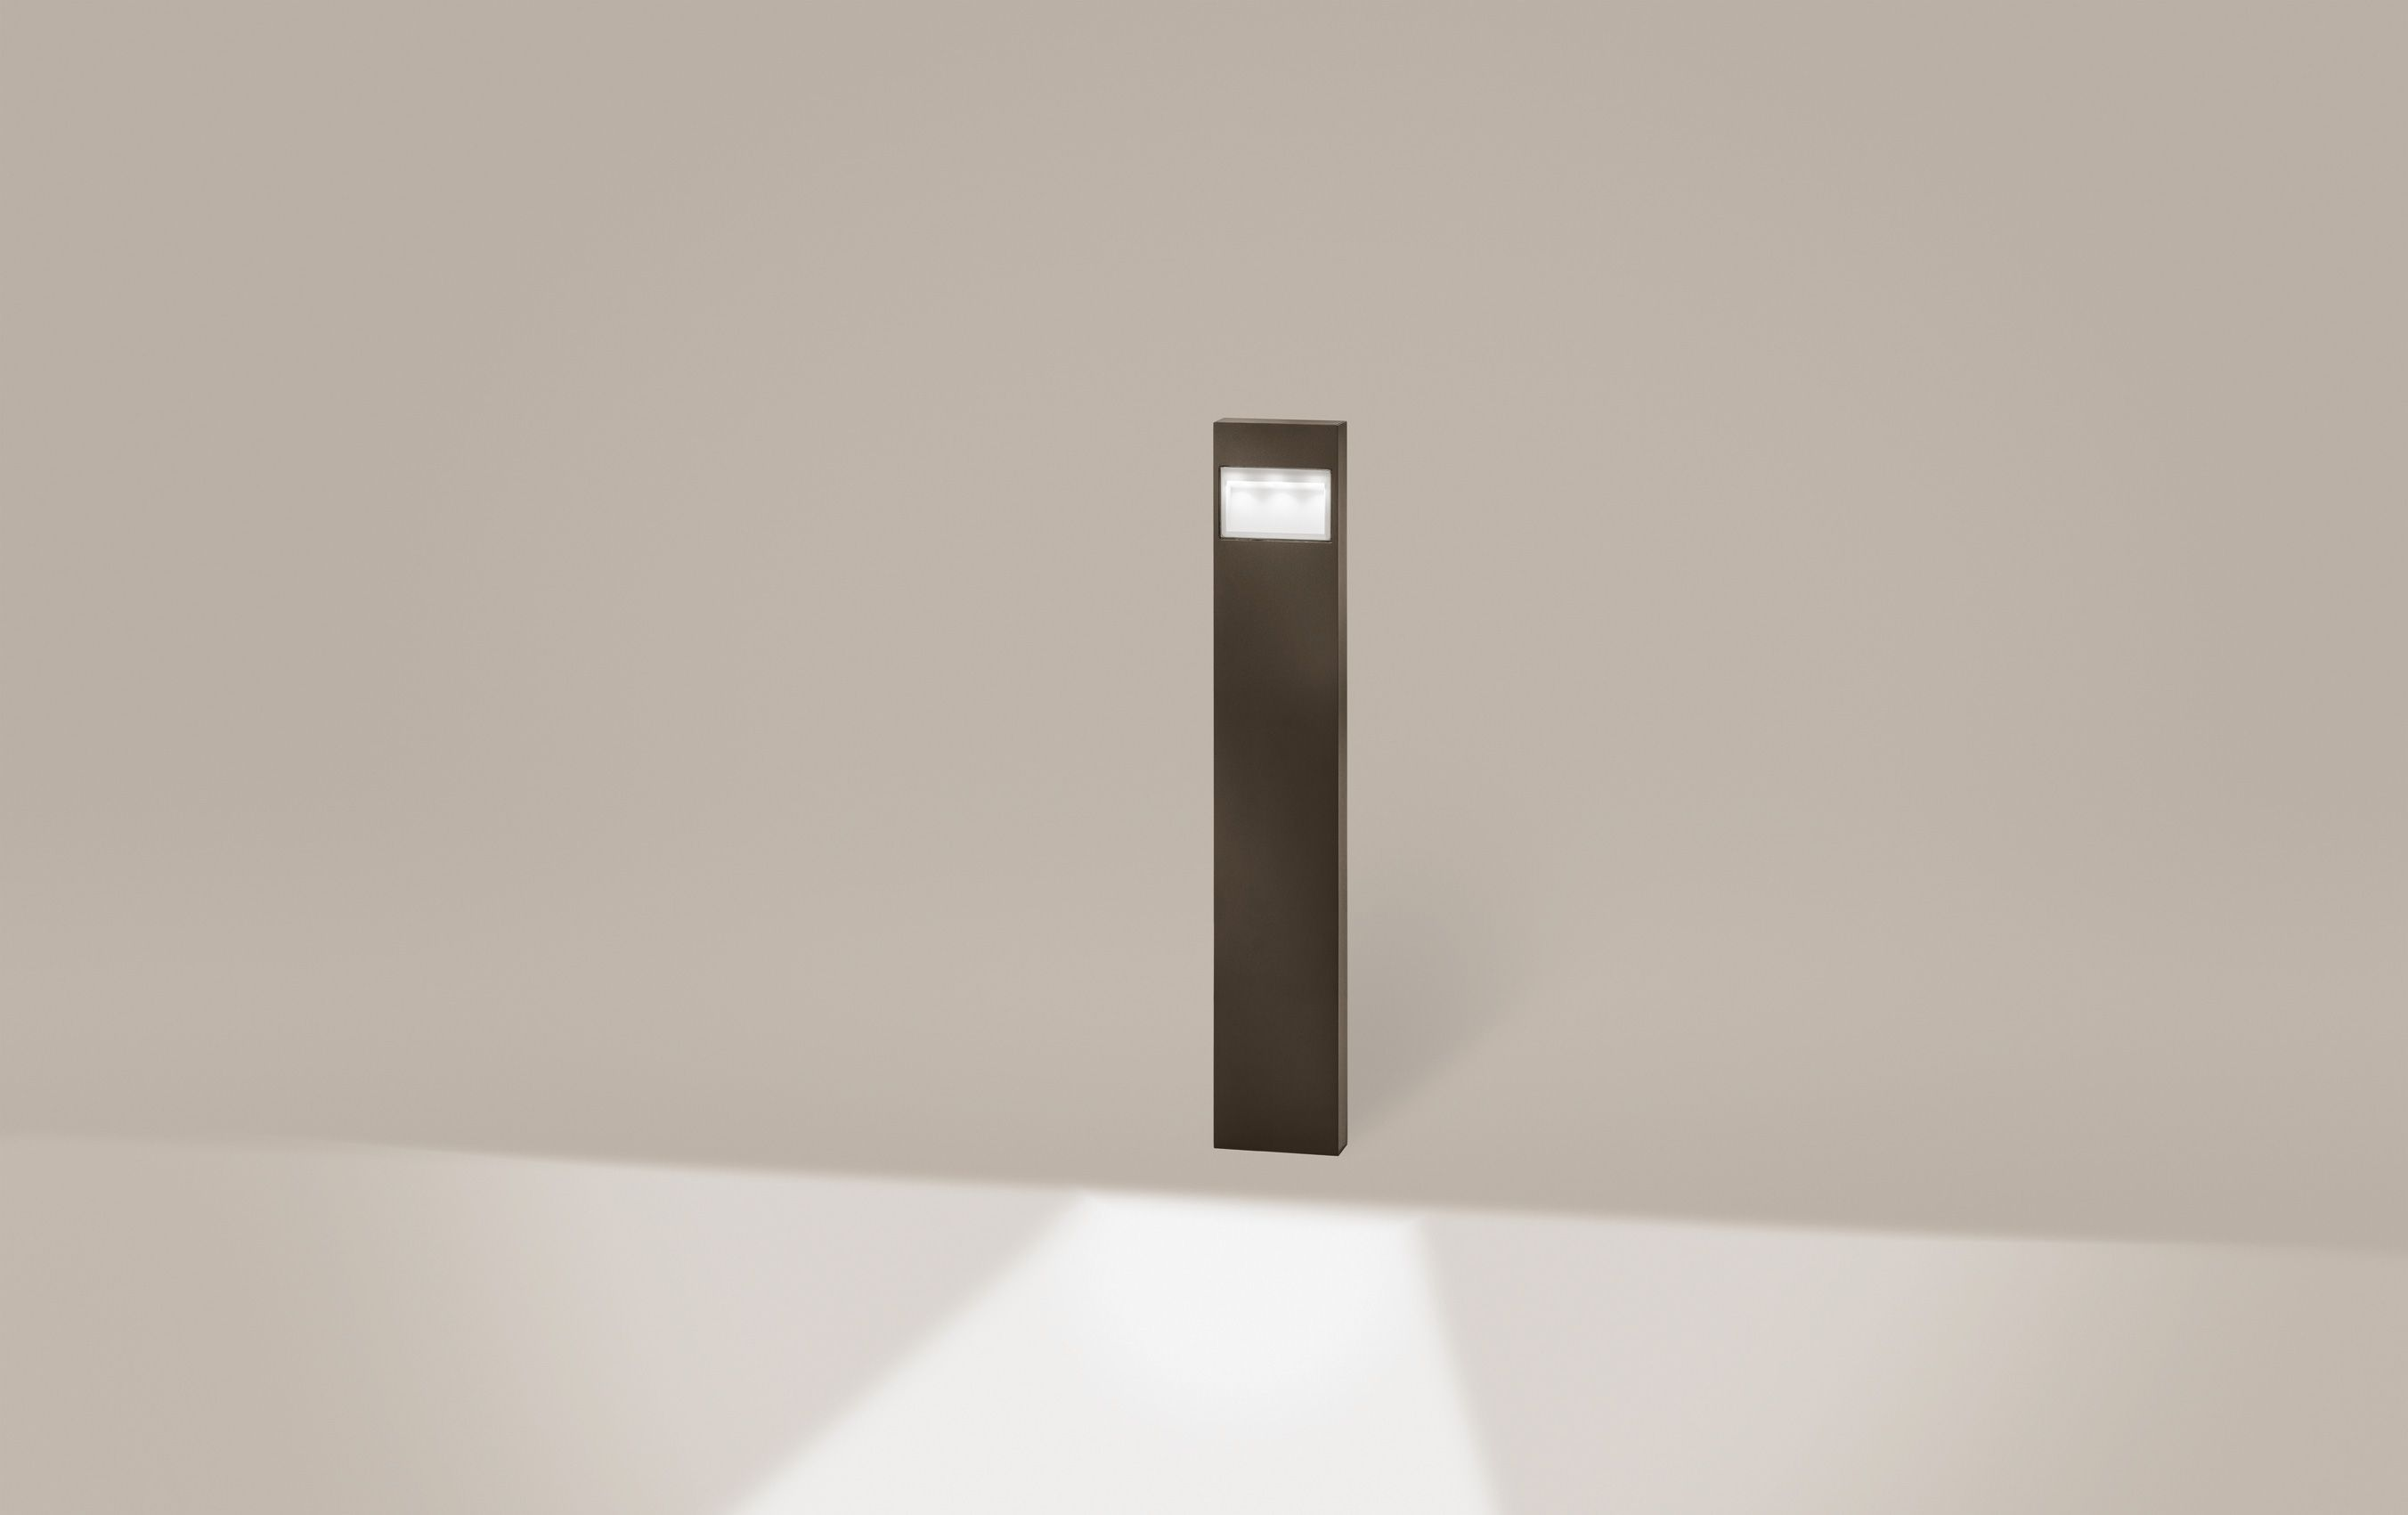 Mox Poller Cool Brown Outside Luminaire Aussenleuchte Bollard Pollerleuchte Aluminium Cool Brown Aluminium Cool Brown Gartenbeleuchtung Beleuchtung